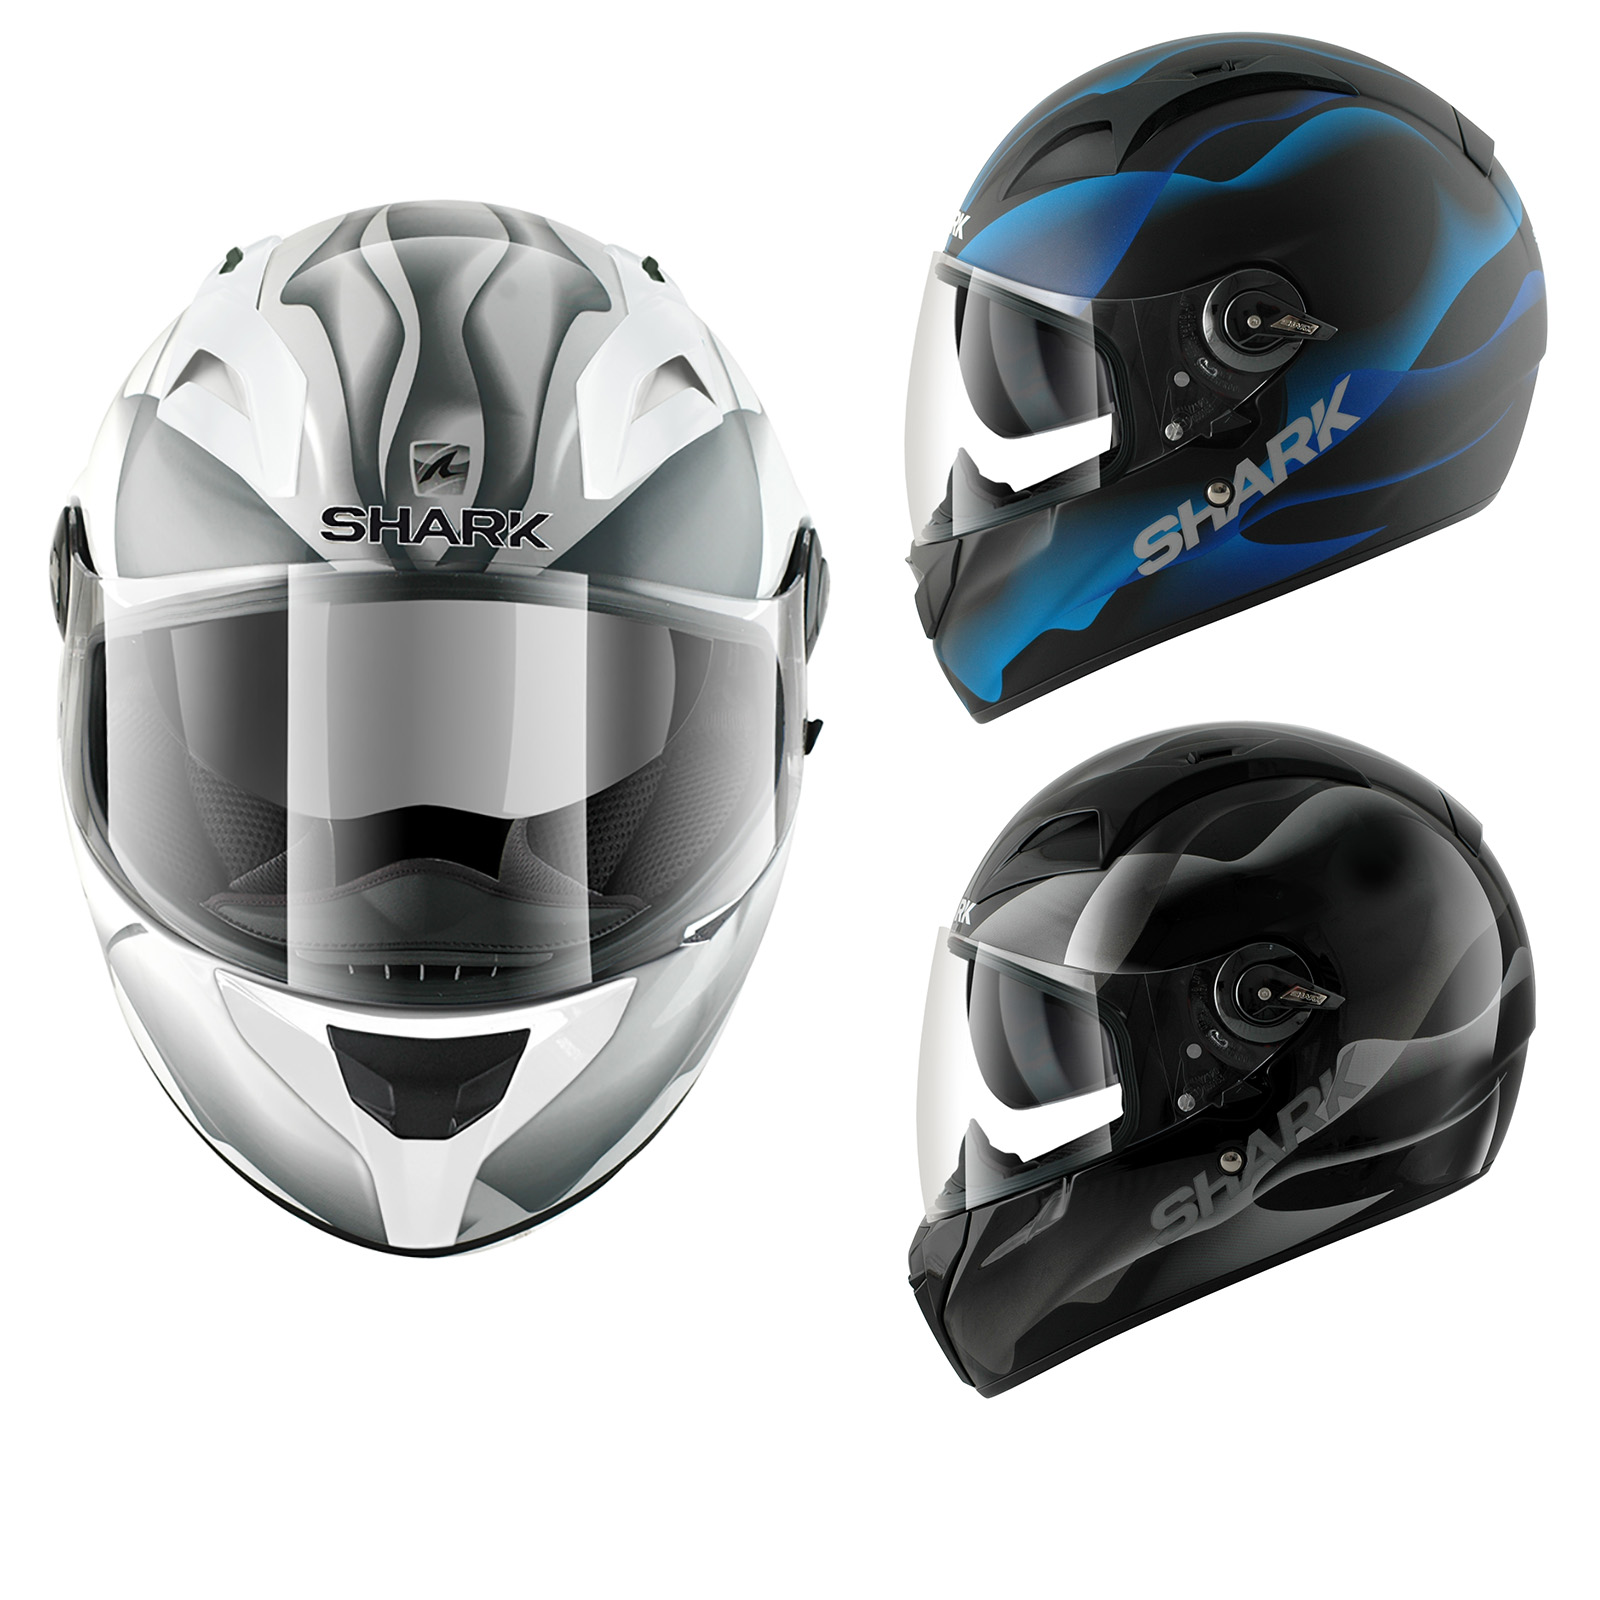 shark vision r smoke motorcycle helmet full face helmets. Black Bedroom Furniture Sets. Home Design Ideas